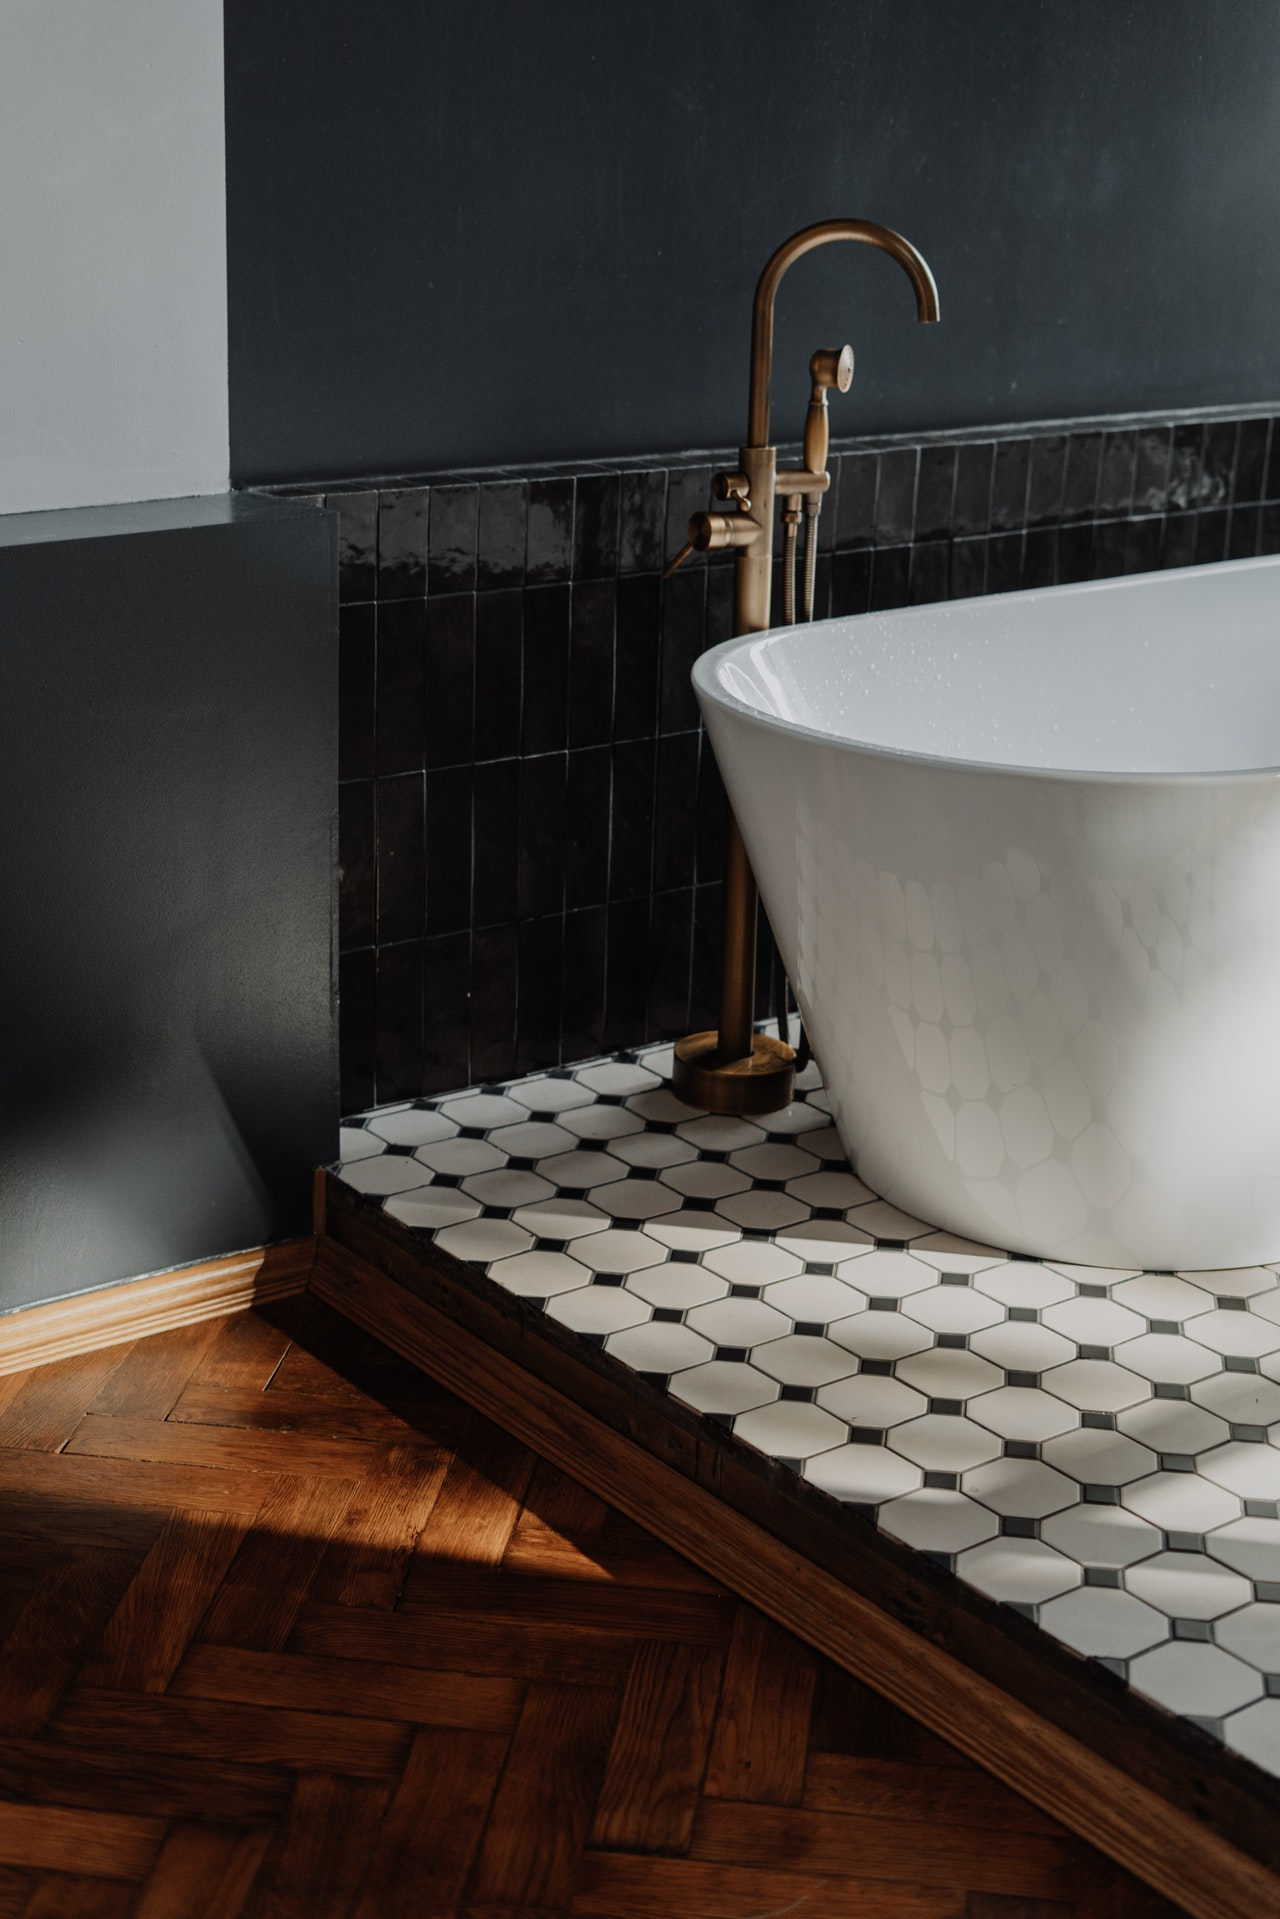 ways which could not be missed for a clean bathroom